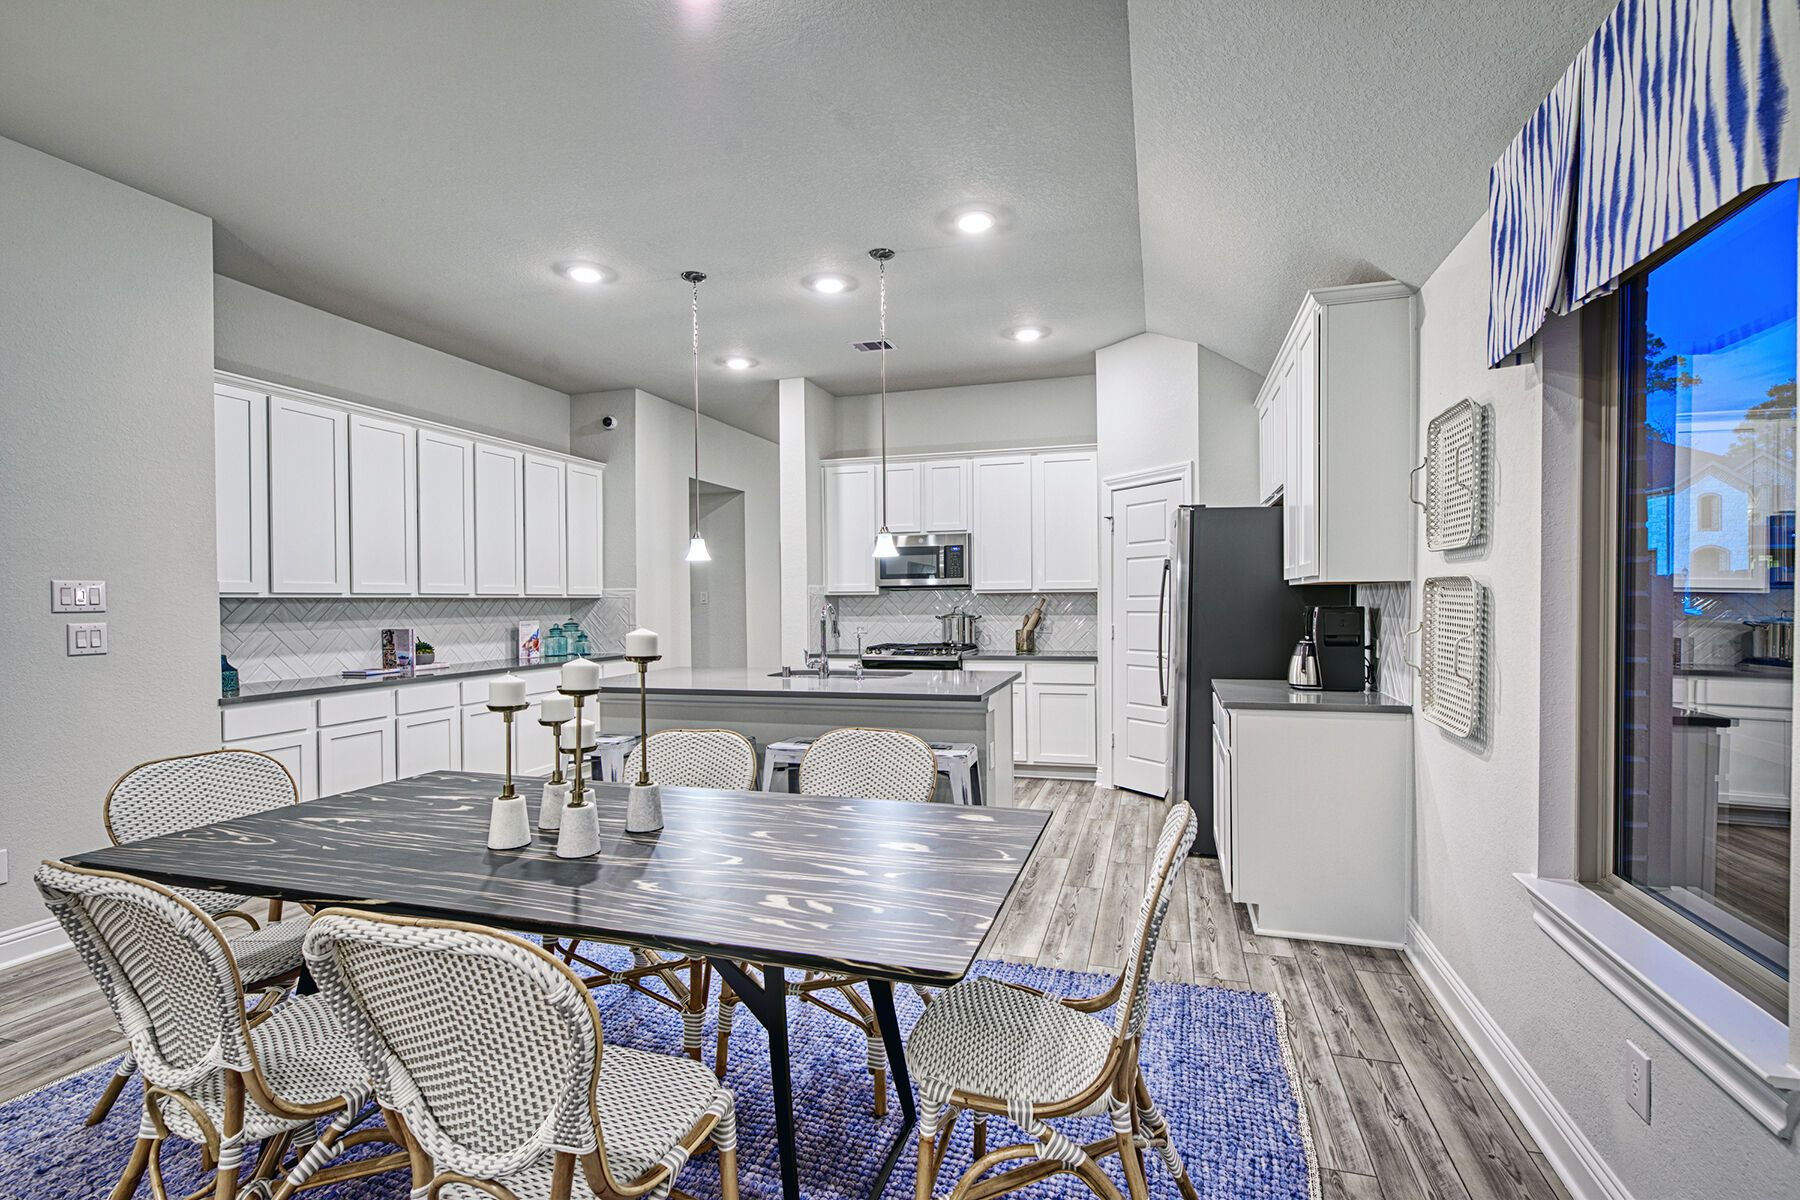 Kitchen featured in the Balboa By M/I Homes in Houston, TX